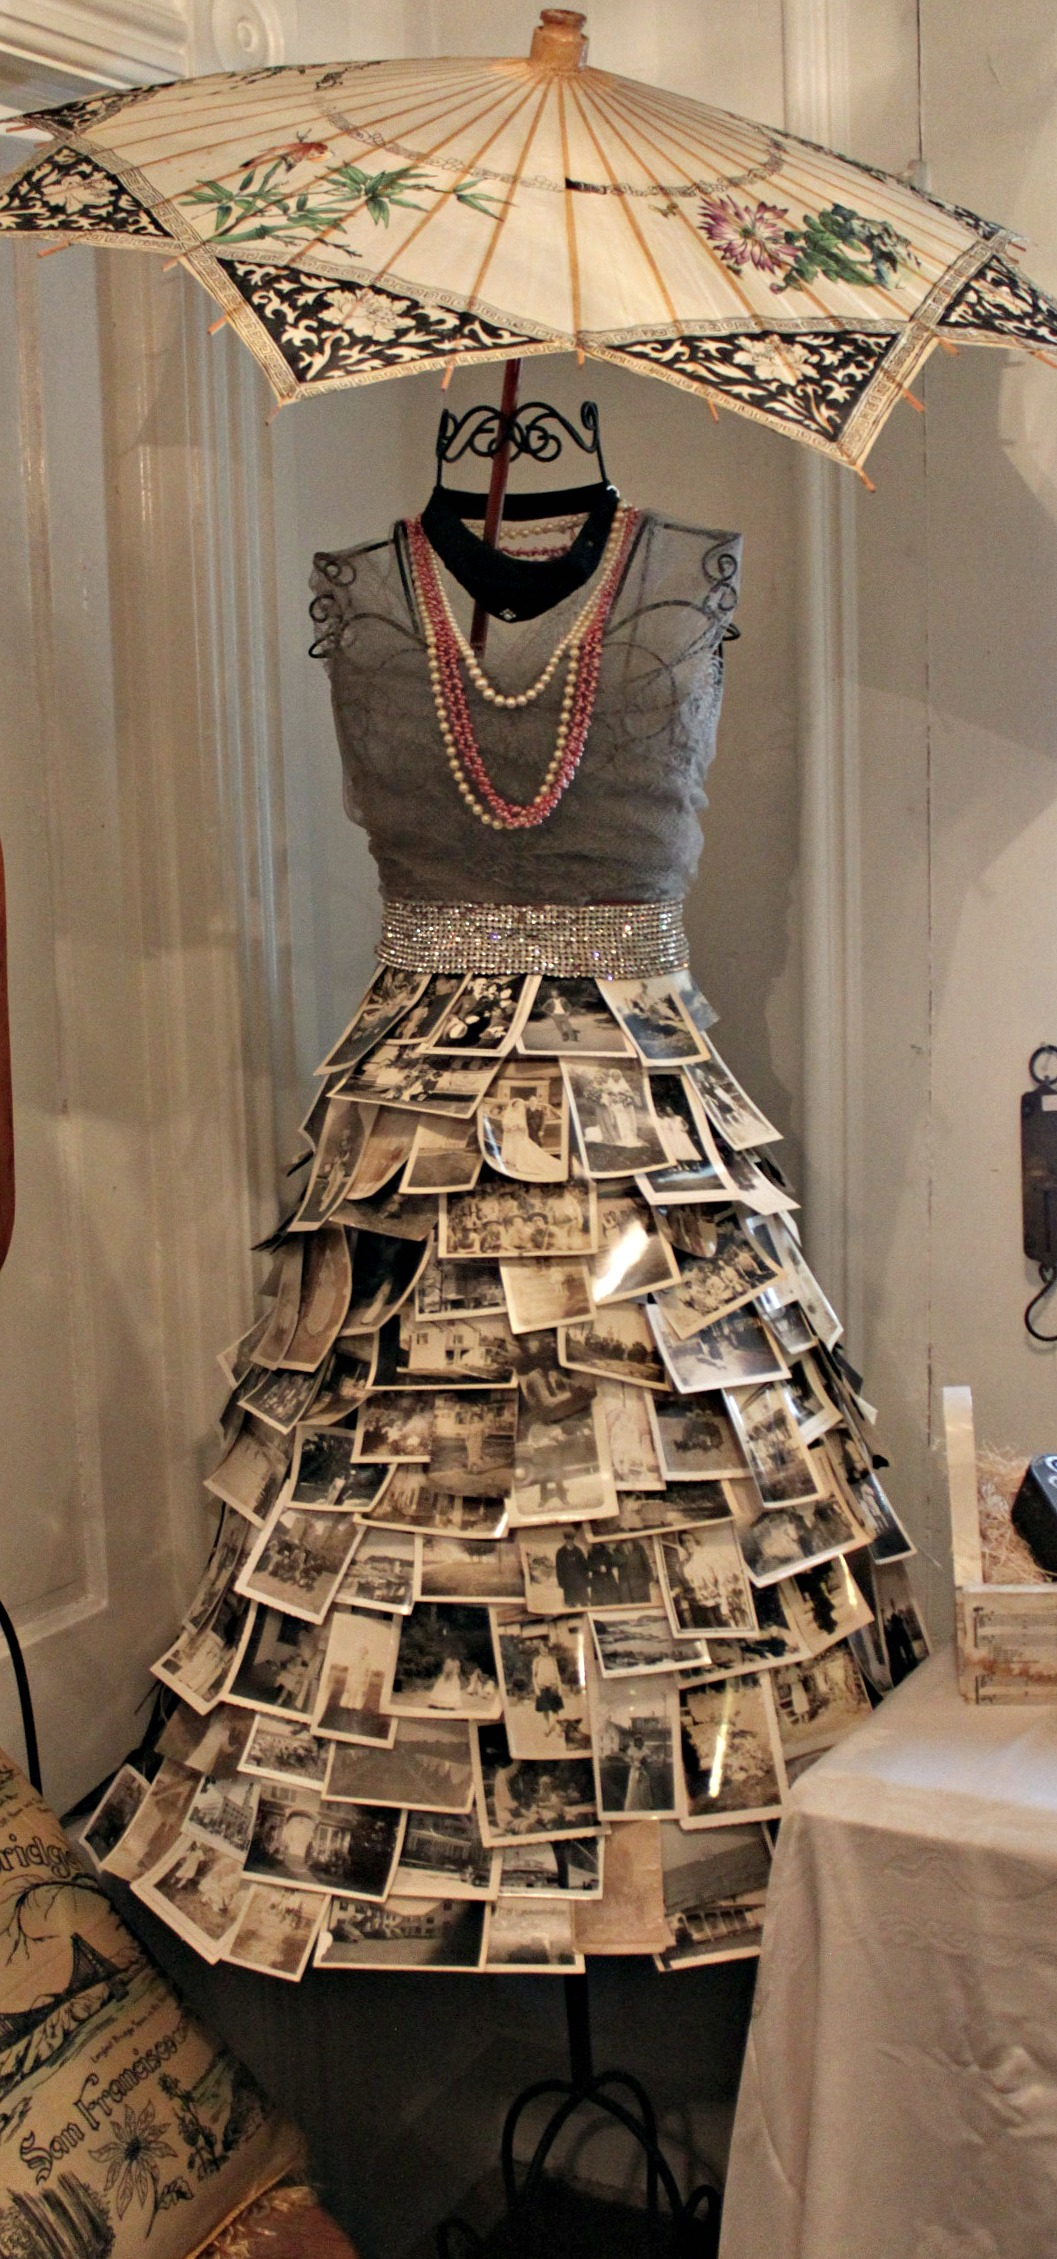 Creative craft ideas using a fitting bust with a skirt made from photos and necklaces around the neck, for unique jewelry display ideas.